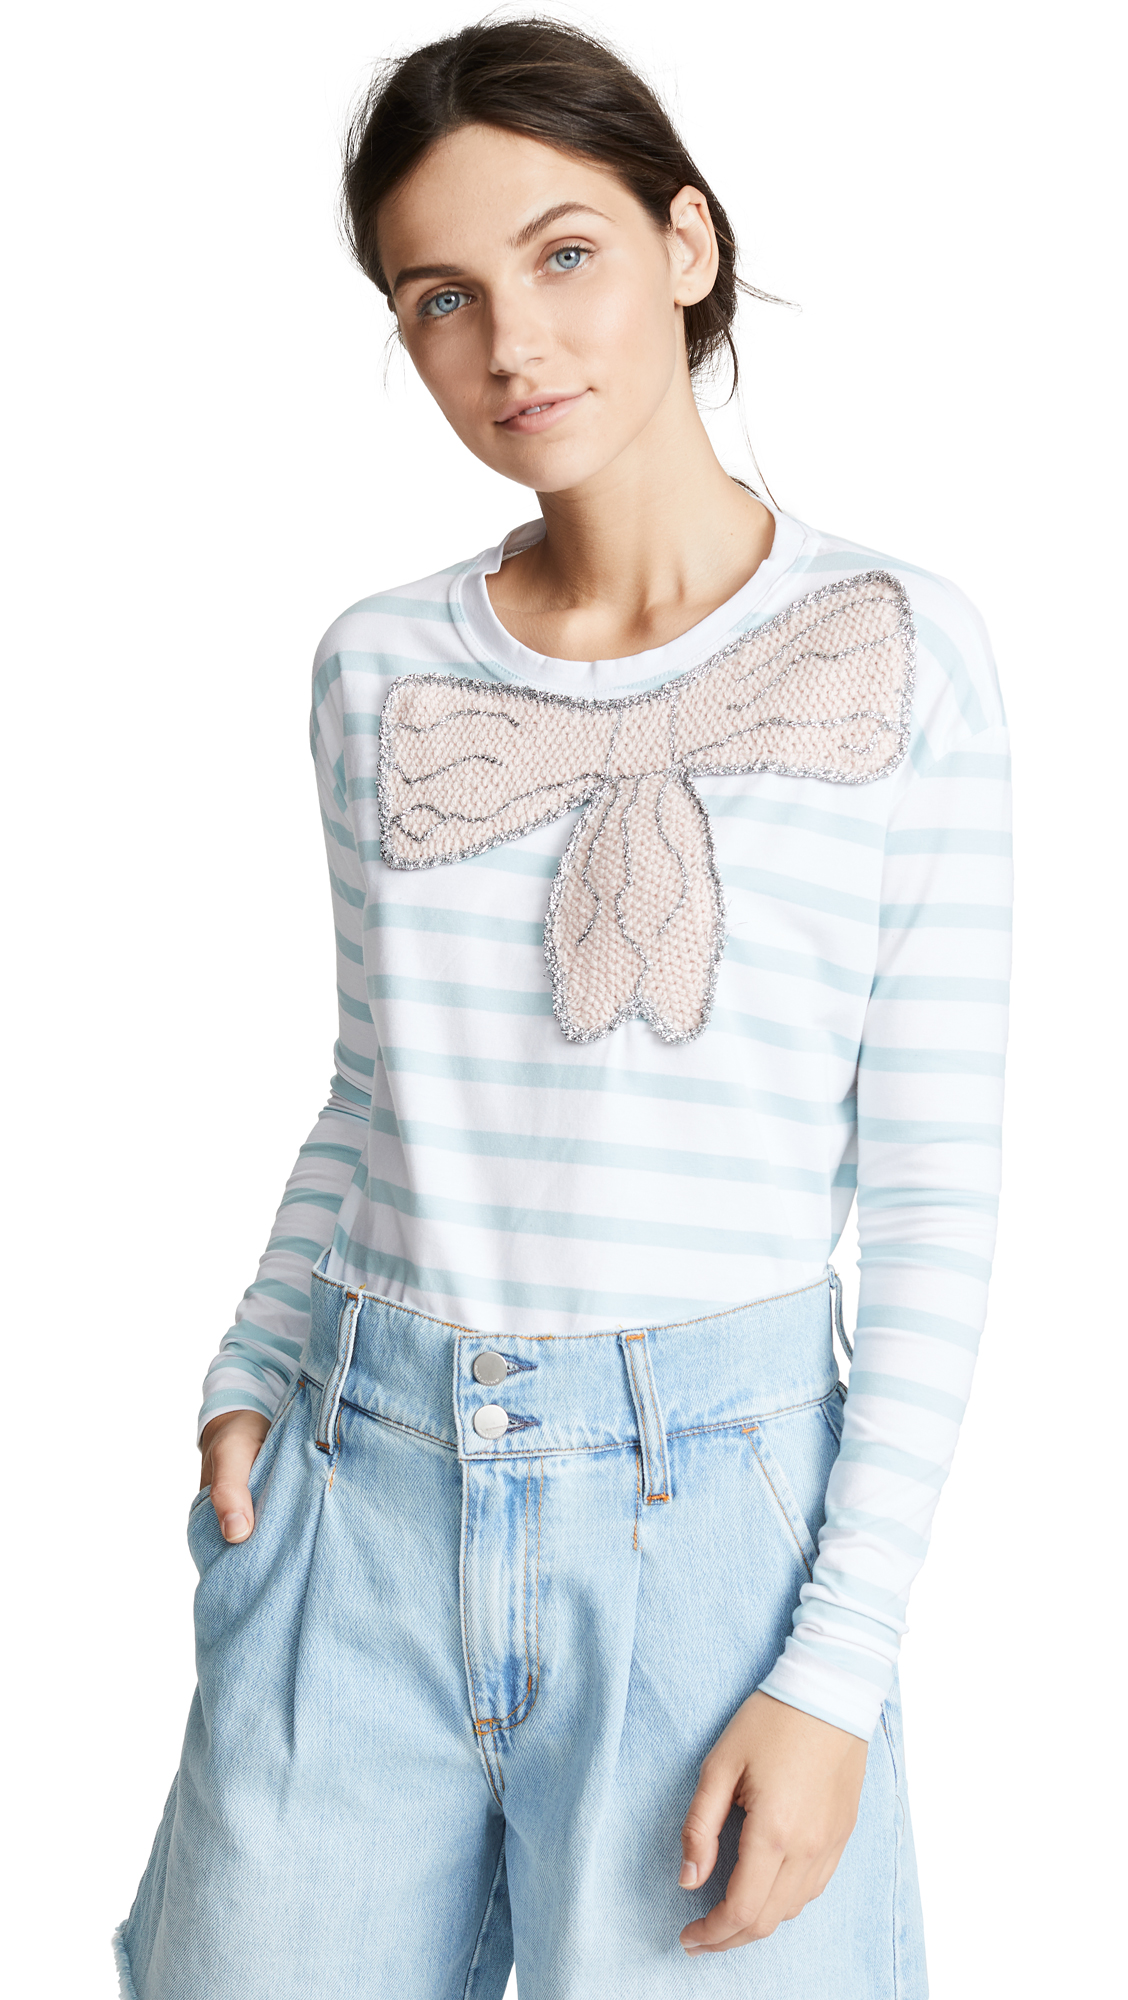 MICHAELA BUERGER LONG SLEEVE TEE WITH BOW